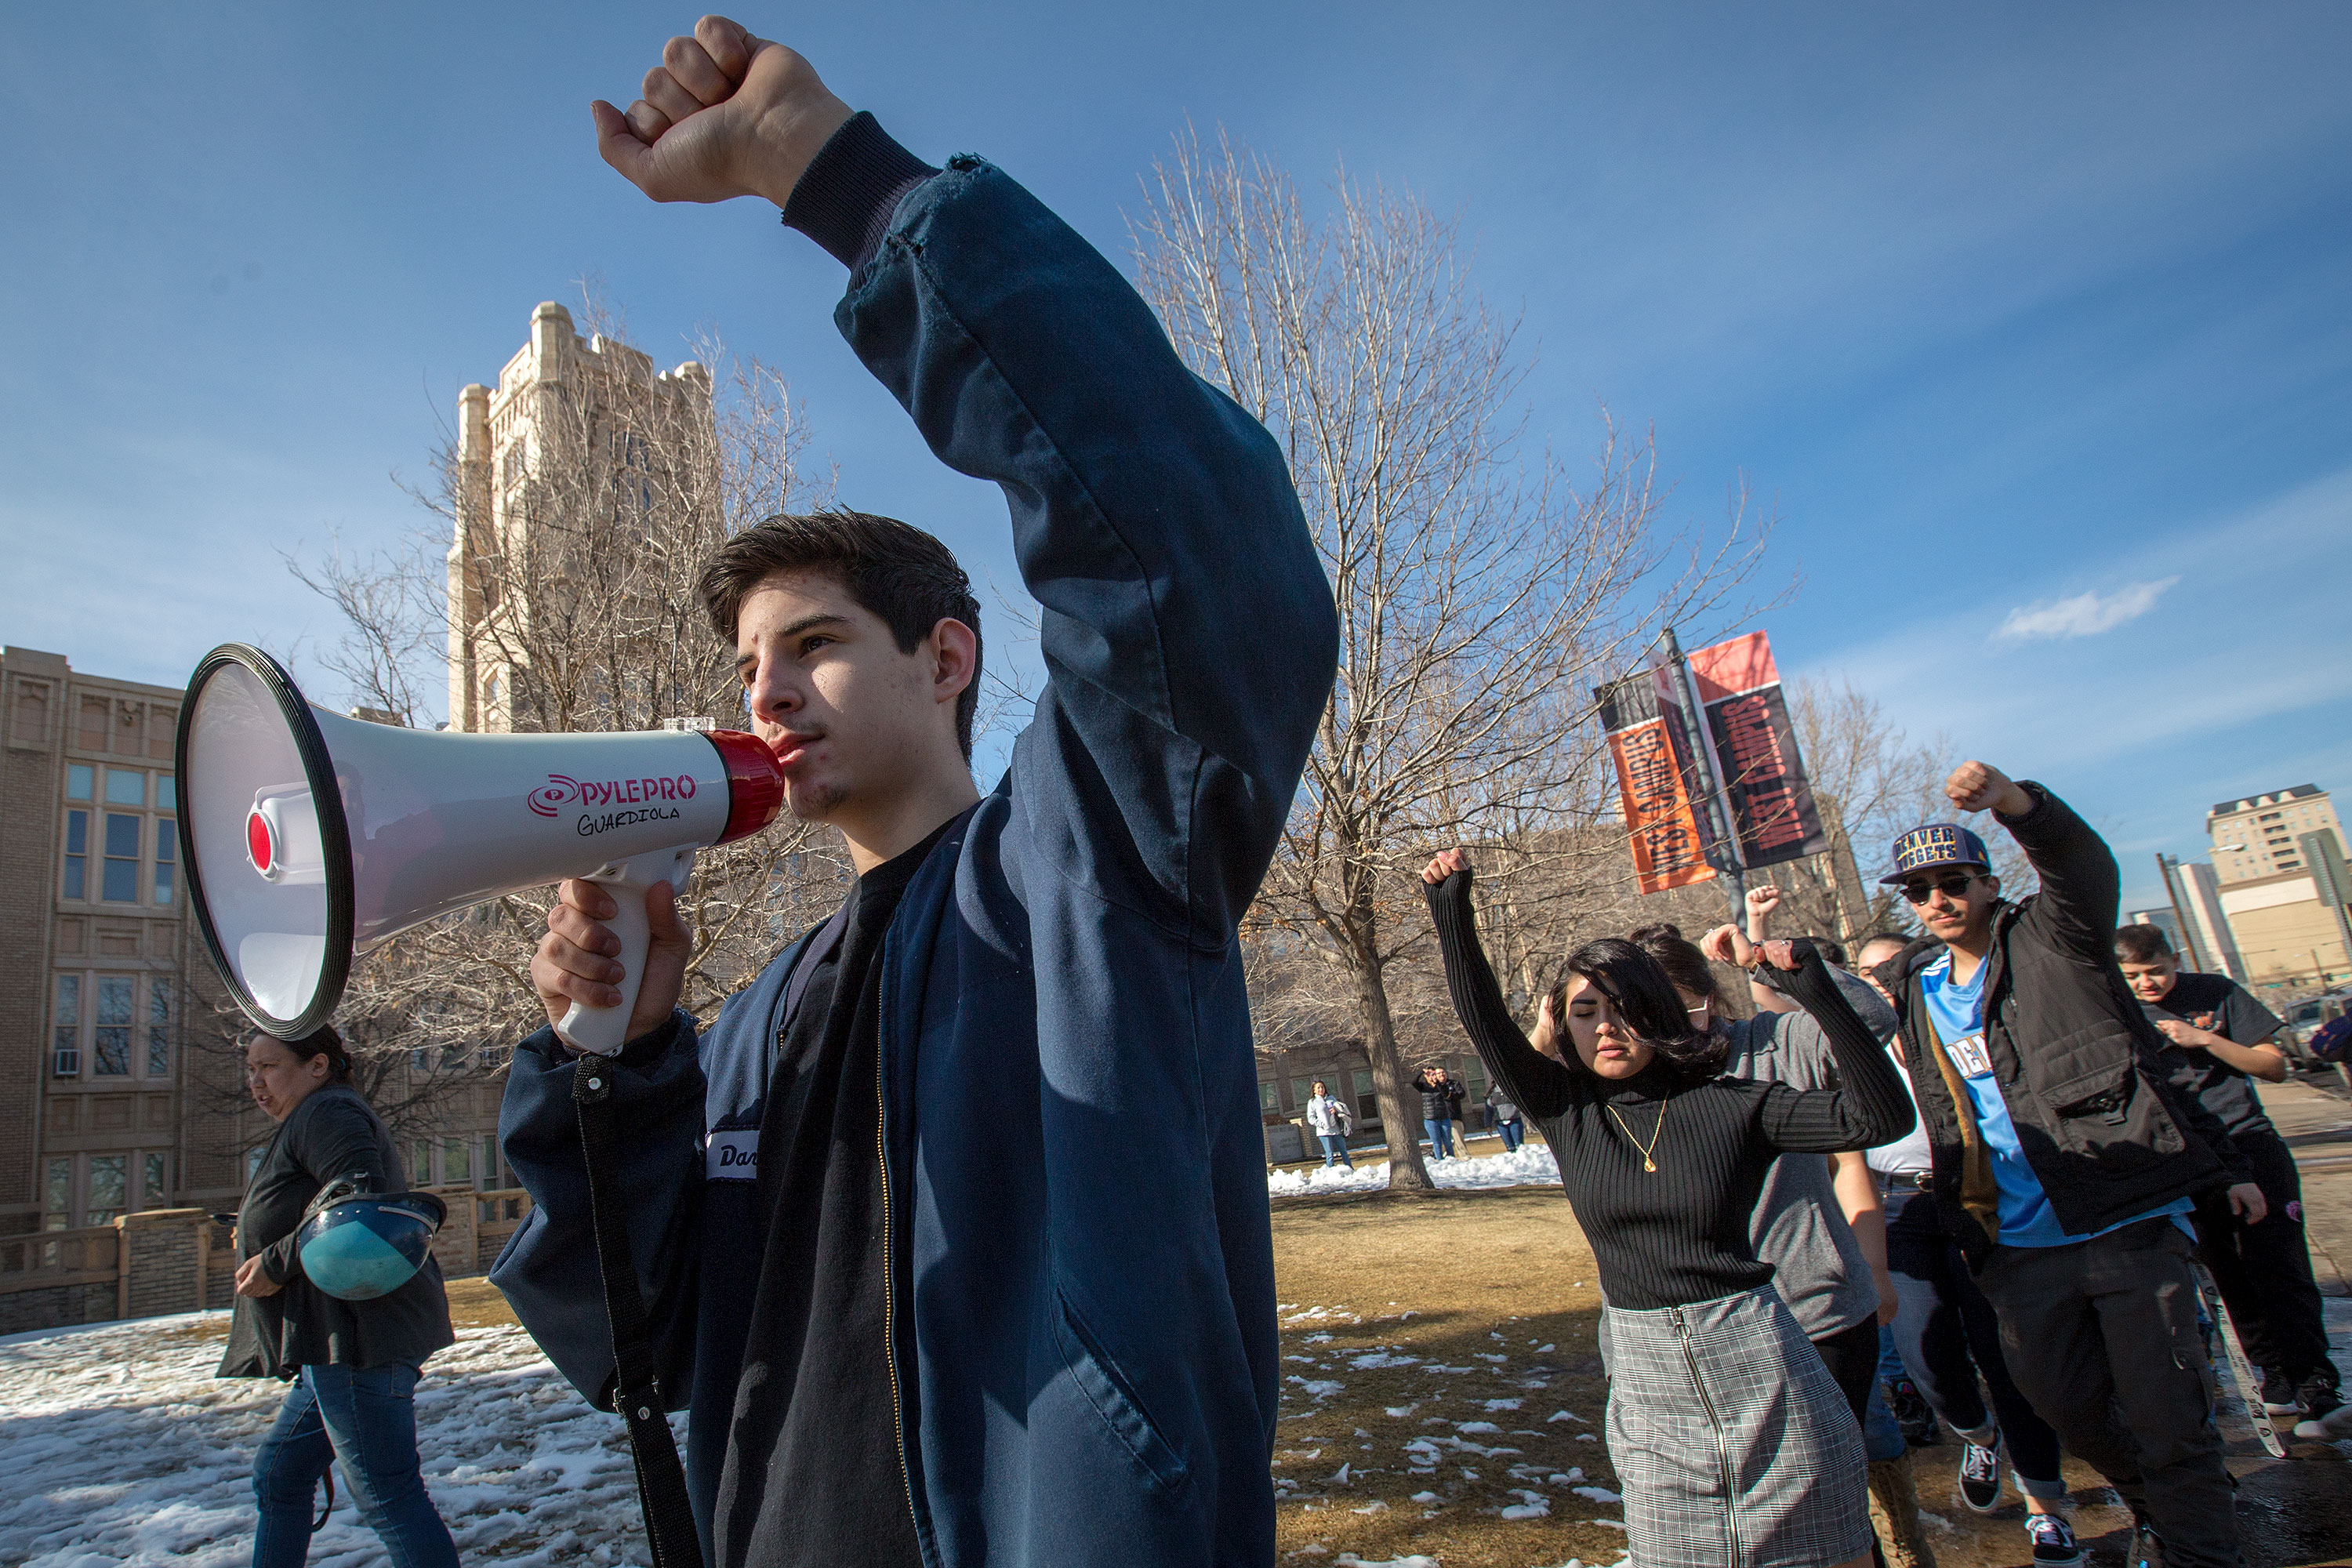 <p>West High School student Esai Lopez, carrying a bullhorn, takes part in a re-enactment of the West High School Blowout on Feb. 26, 2019.</p>